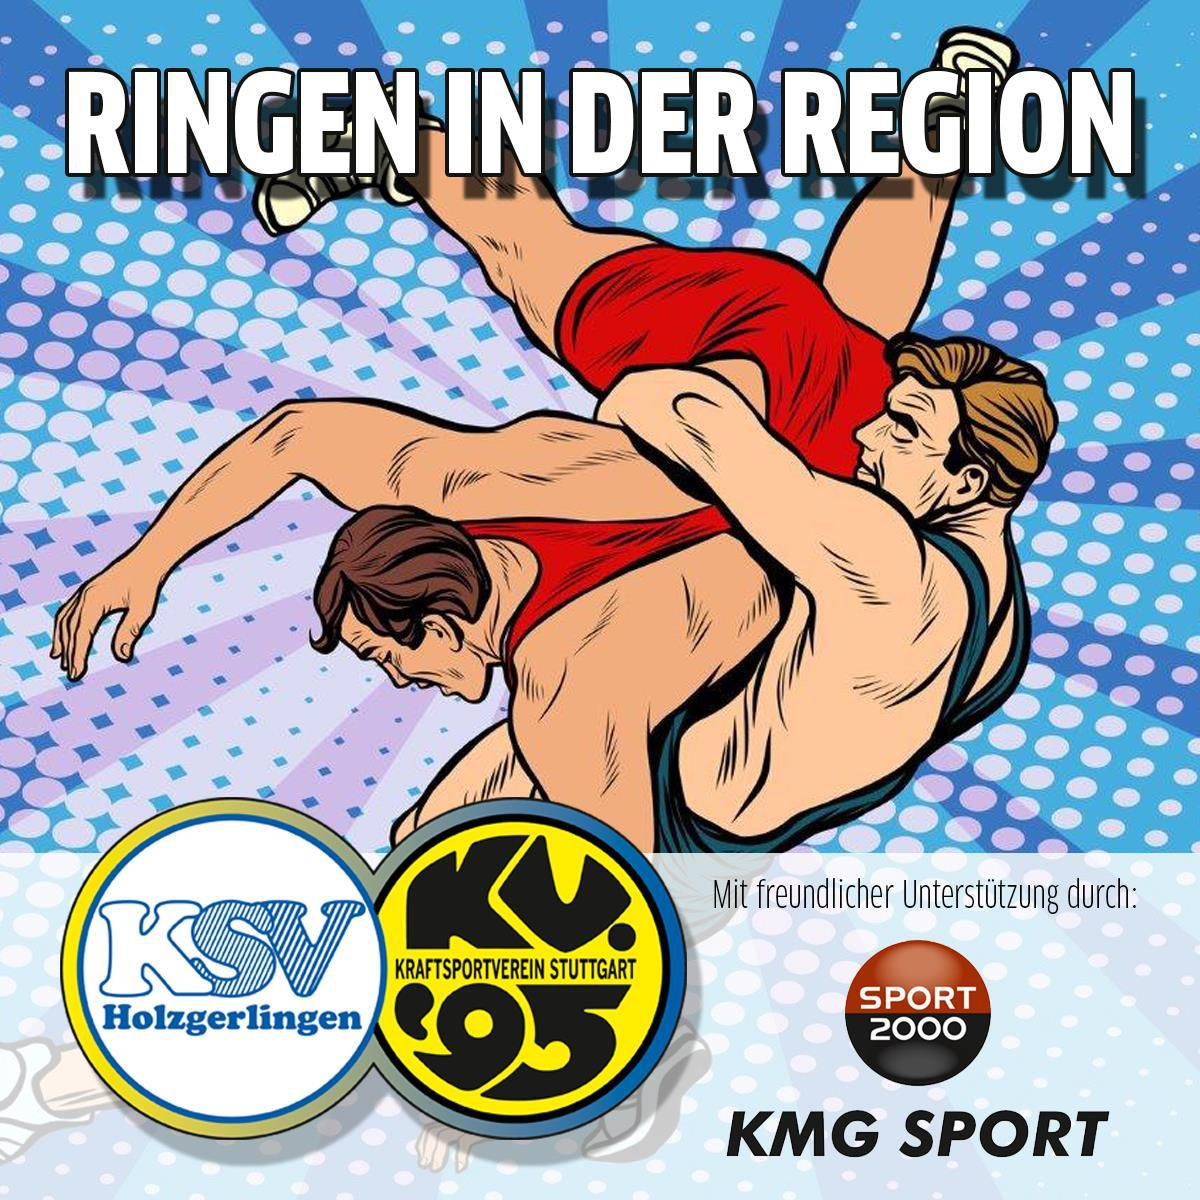 Ringen in der Region